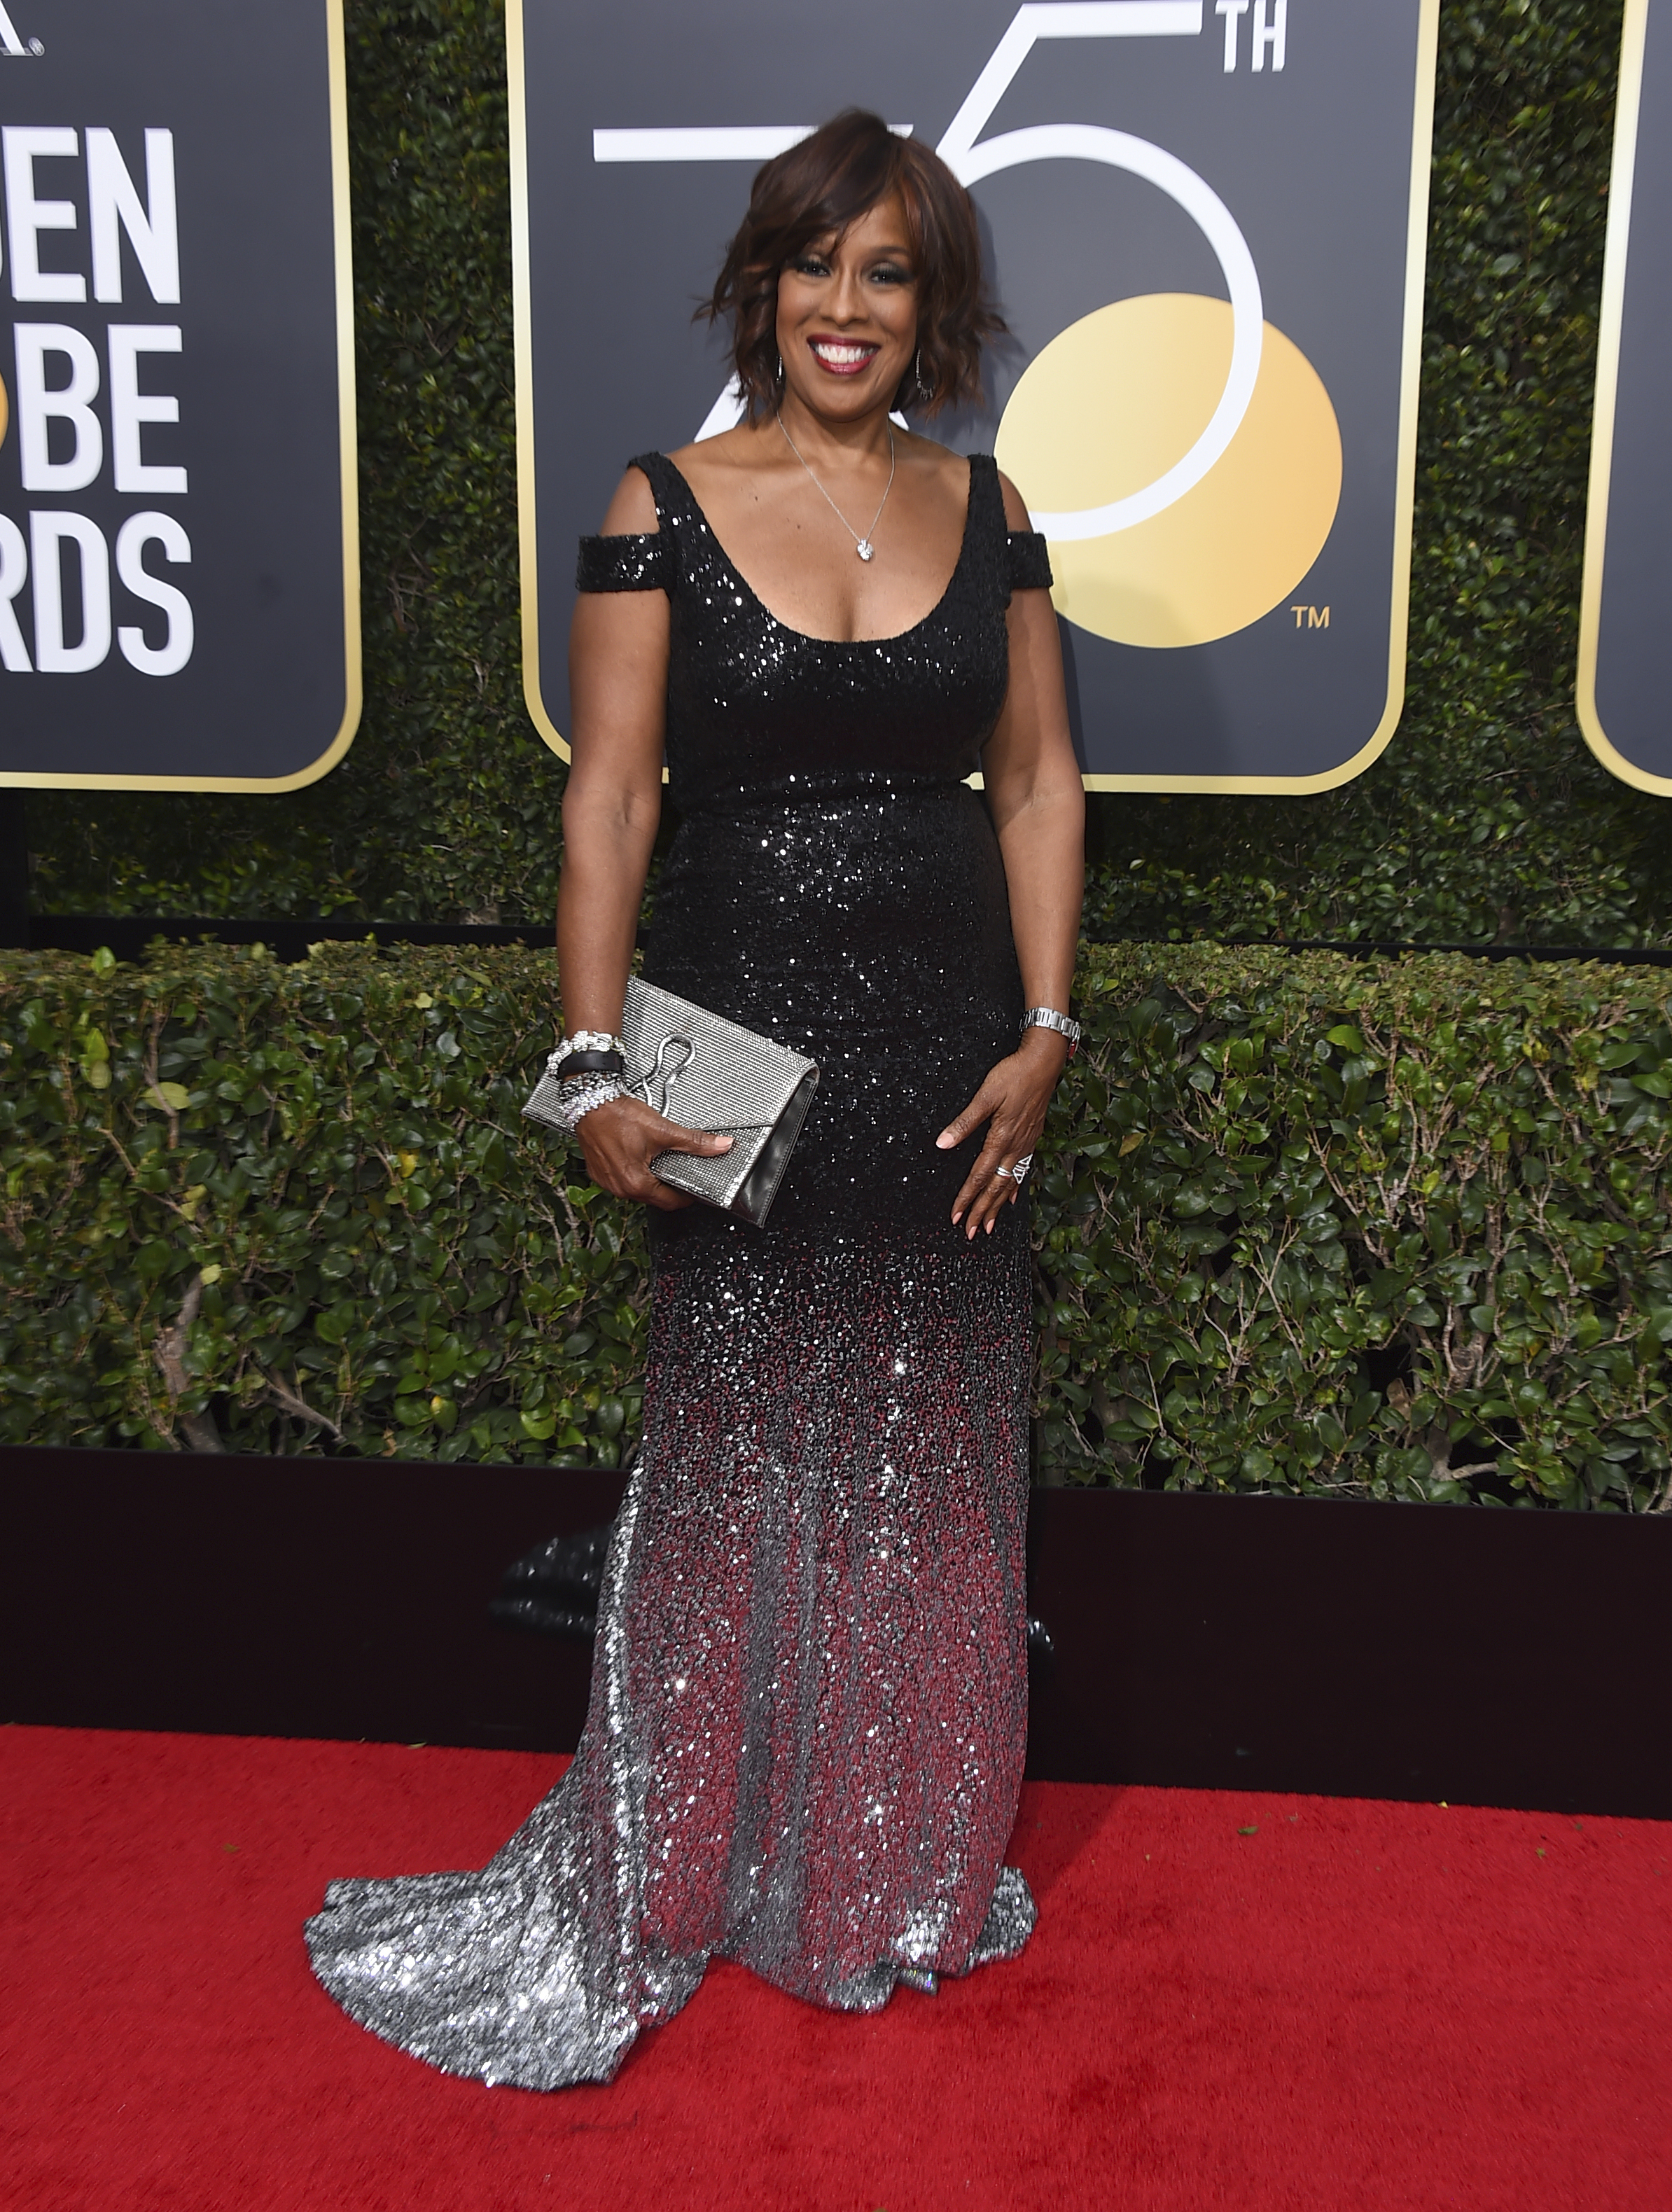 <div class='meta'><div class='origin-logo' data-origin='AP'></div><span class='caption-text' data-credit='Jordan Strauss/Invision/AP'>Gayle King arrives at the 75th annual Golden Globe Awards at the Beverly Hilton Hotel on Sunday, Jan. 7, 2018, in Beverly Hills, Calif.</span></div>